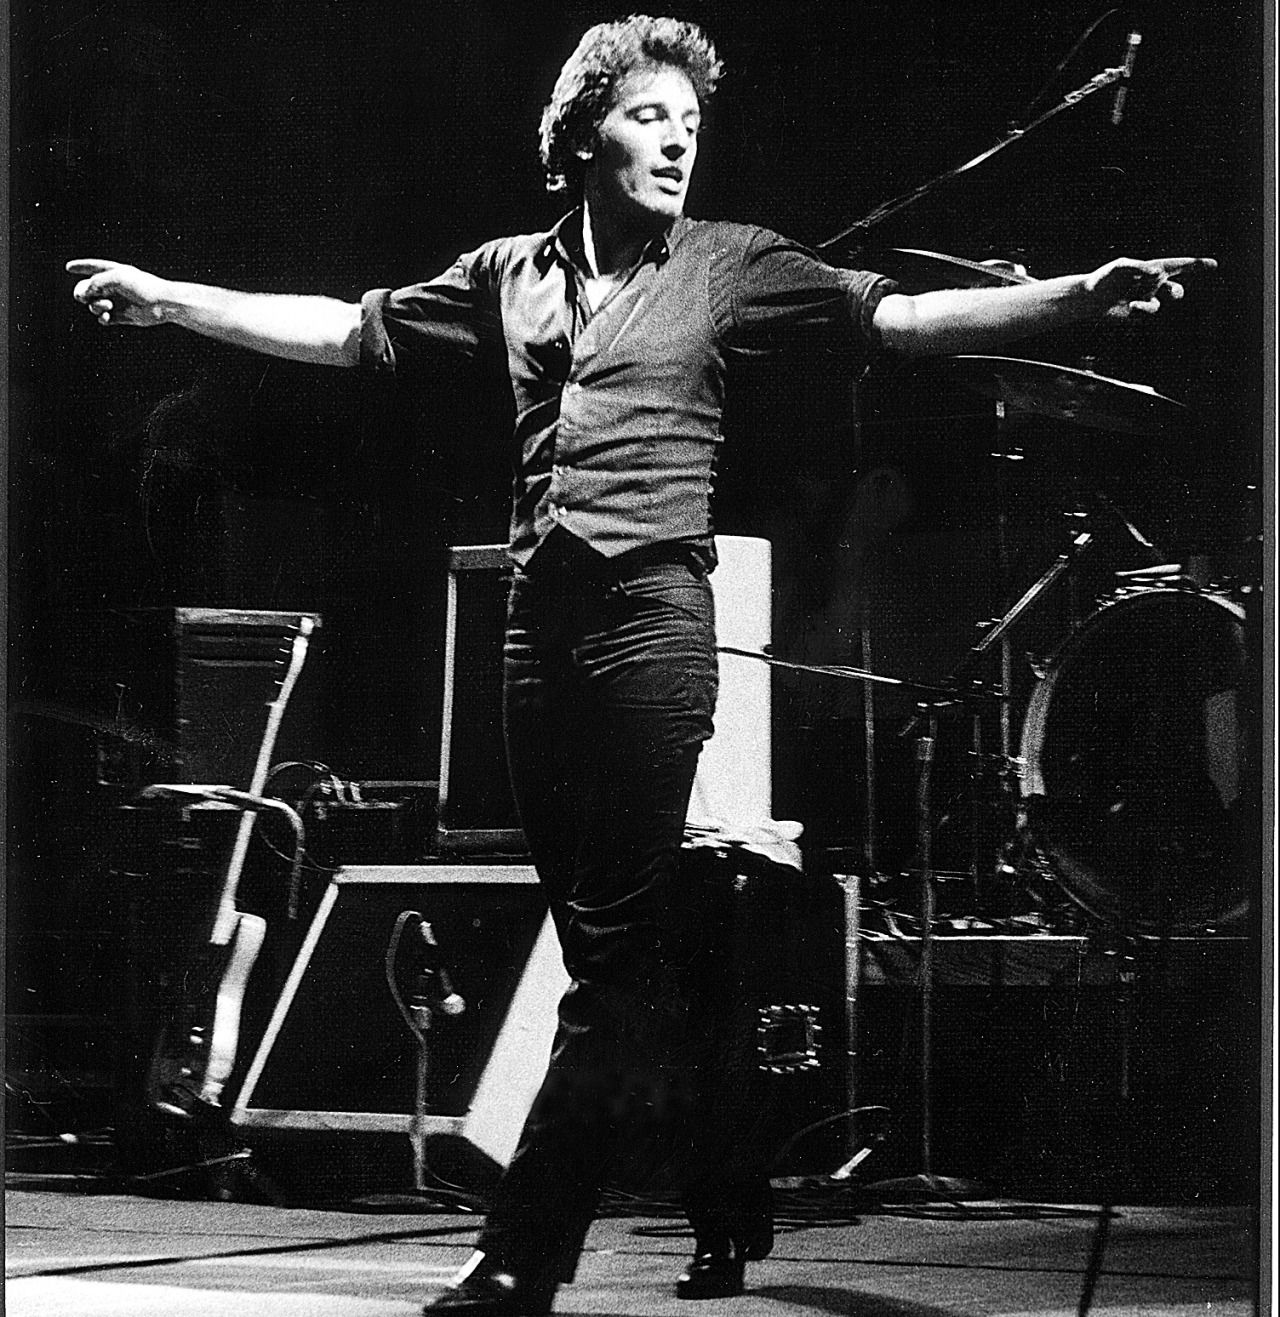 Springsteen kicking off the Darkness tour, 1978 in 2019